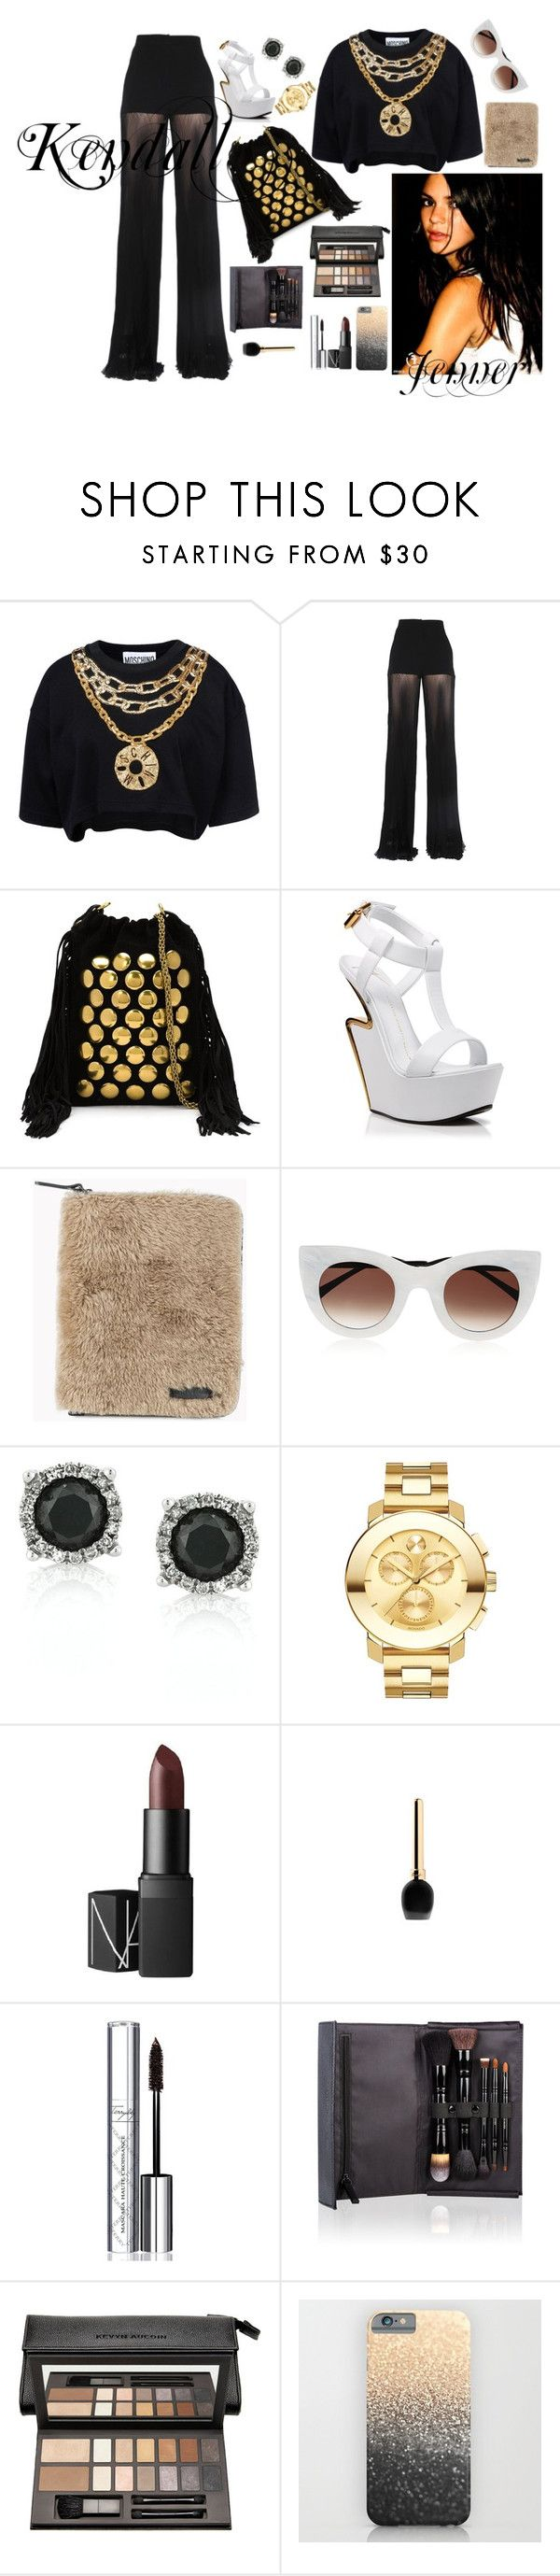 """""""Are You The Next Kendall?"""" by dinyvia on Polyvore featuring Moschino, Versace, Jérôme Dreyfuss, Giuseppe Zanotti, Brunello Cucinelli, Thierry Lasry, Mark Broumand, Movado, NARS Cosmetics and Guerlain"""